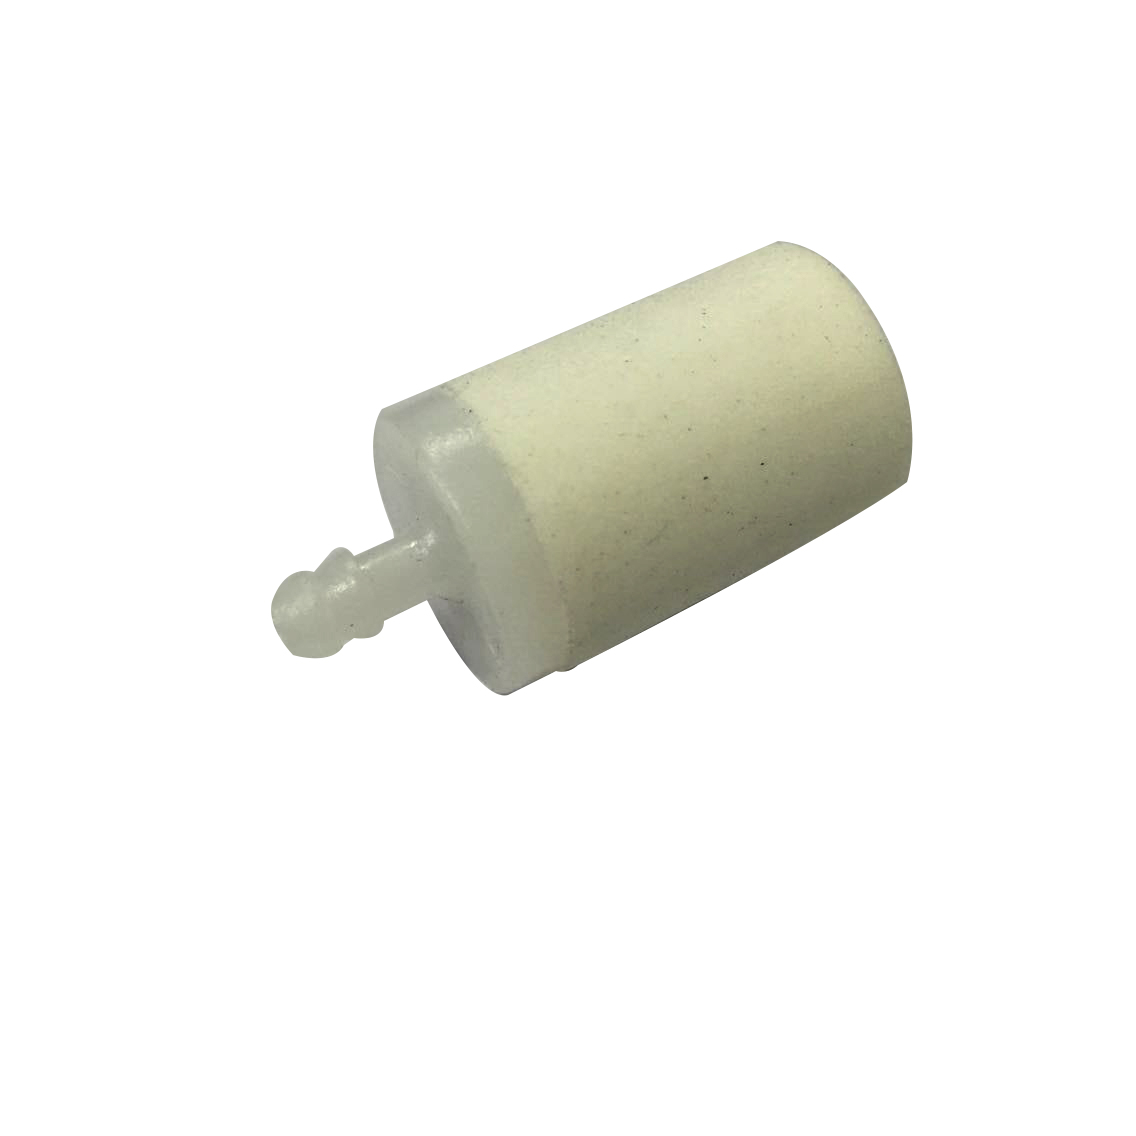 Fuel Filter For Husqvarna 50 51 55 61 268 272 XP 345 350 351 353 365 372  575 385 390 Chainsaw Pick Up body Tip Diam 5mm Body Diam 20mm